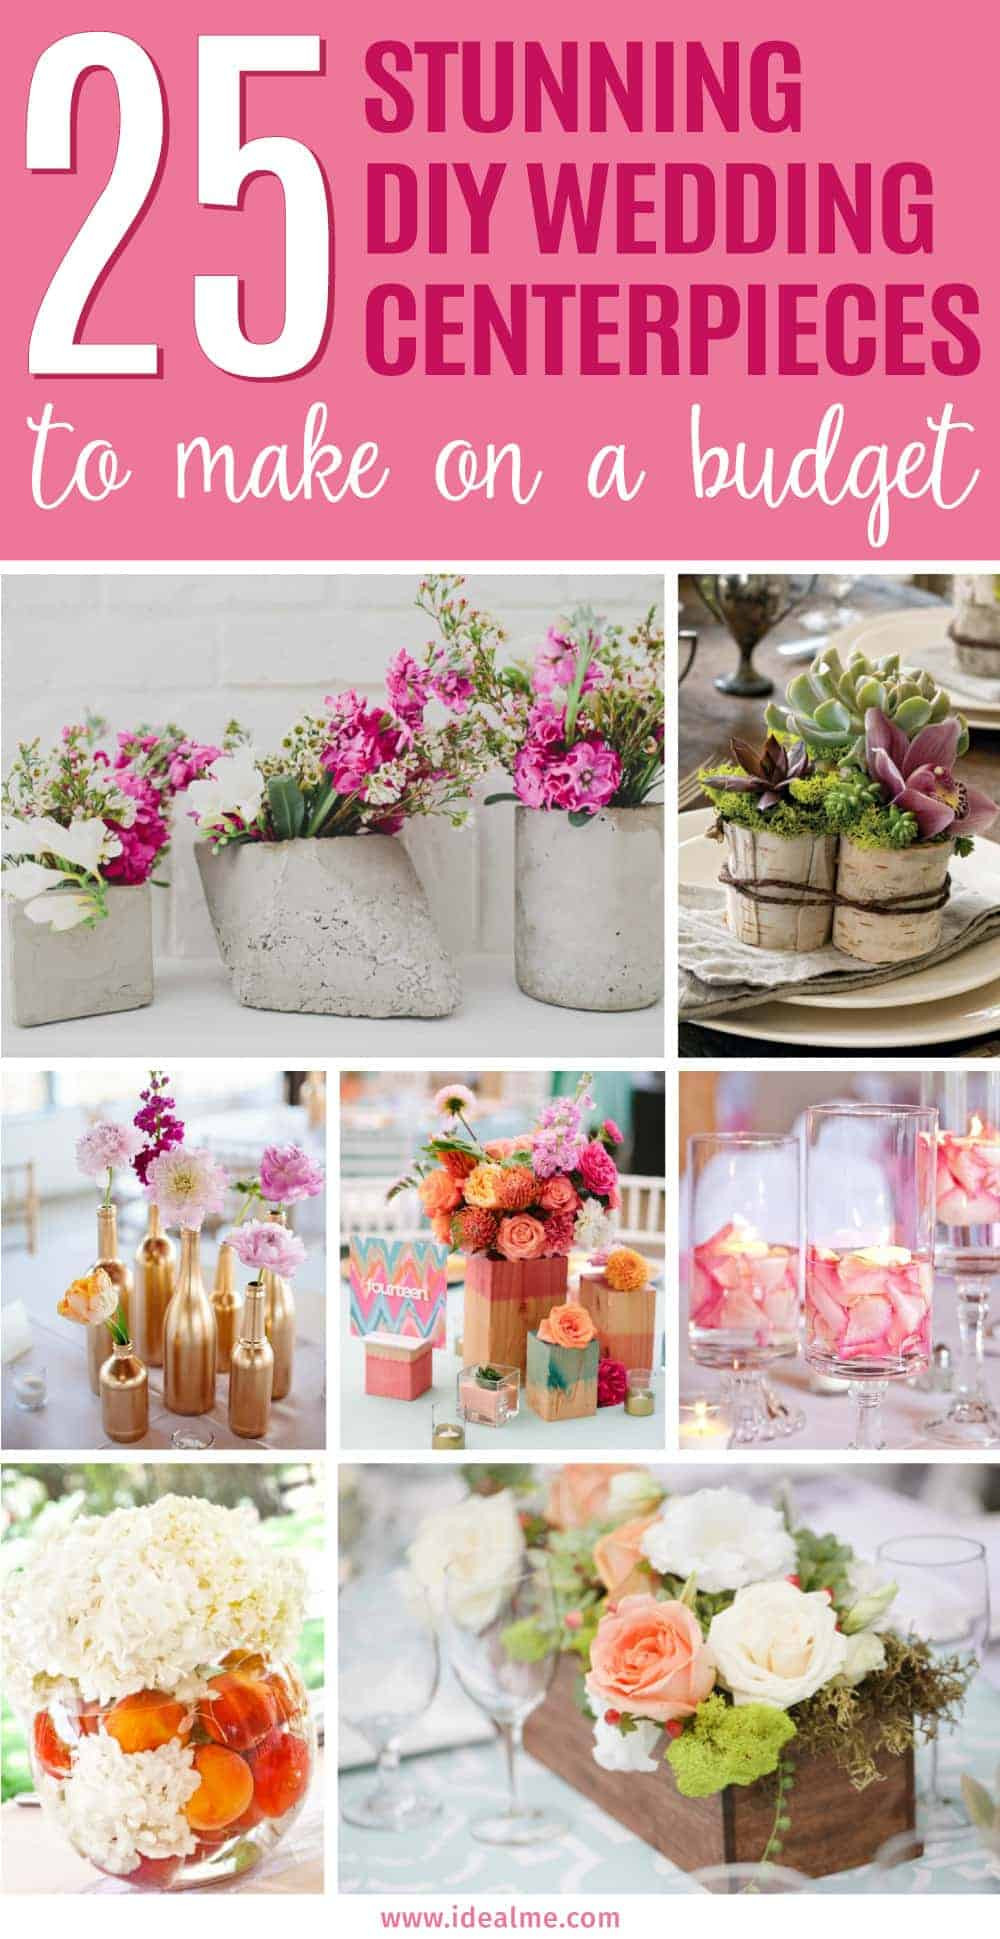 Best ideas about Wedding Centerpieces DIY . Save or Pin 25 Stunning DIY Wedding Centerpieces to Make on a Bud Now.